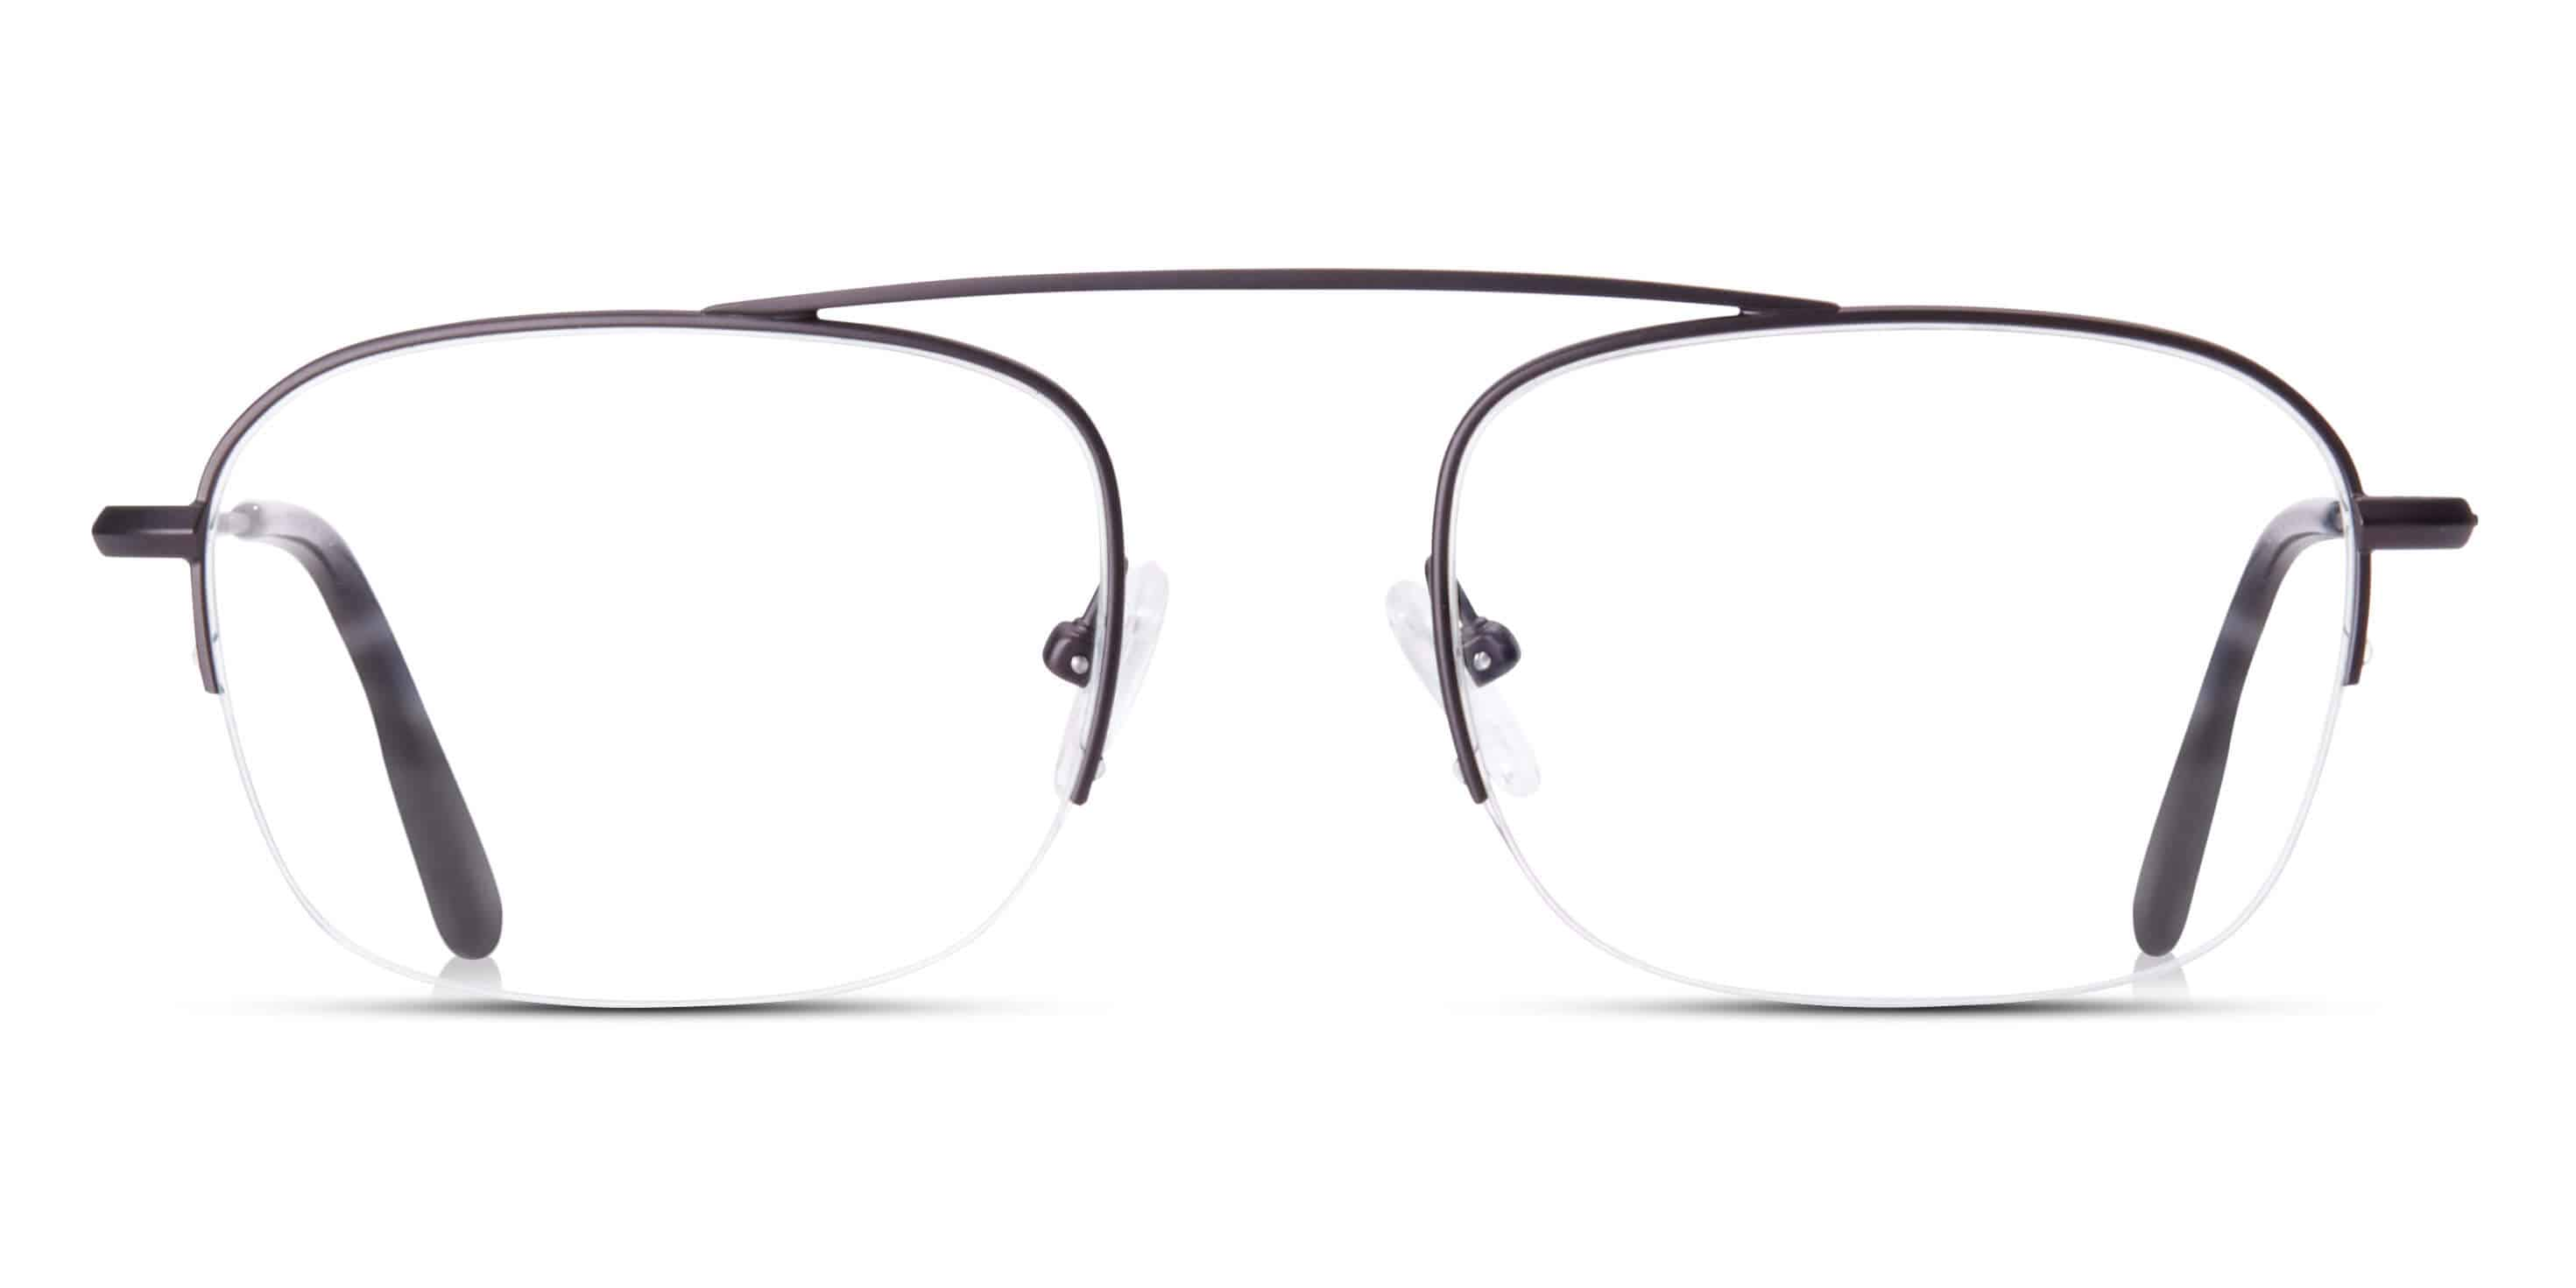 Aviator half-frame glasses